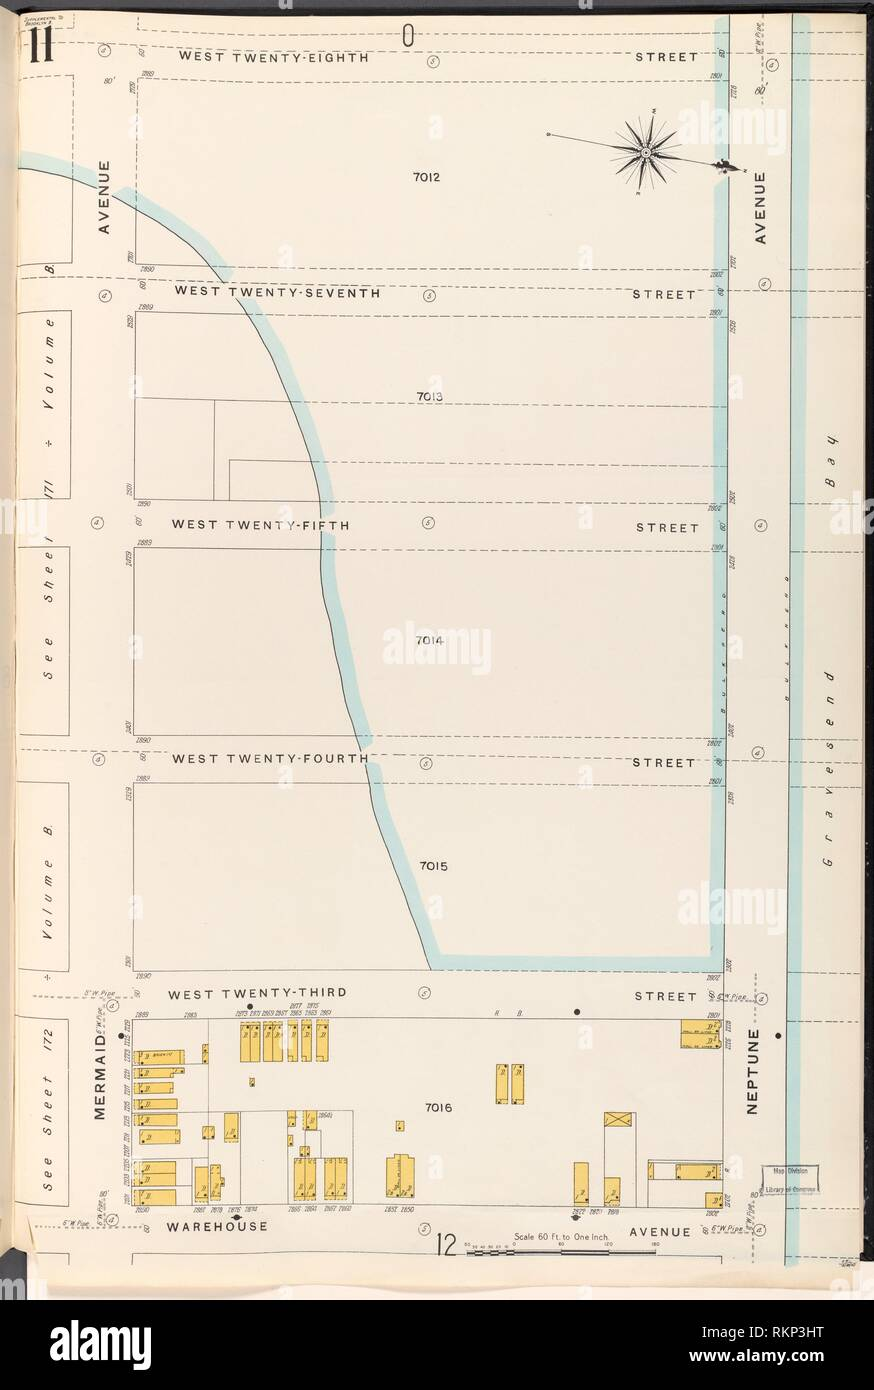 brooklyn vol  b plate no  11 [map bounded by w 28th st